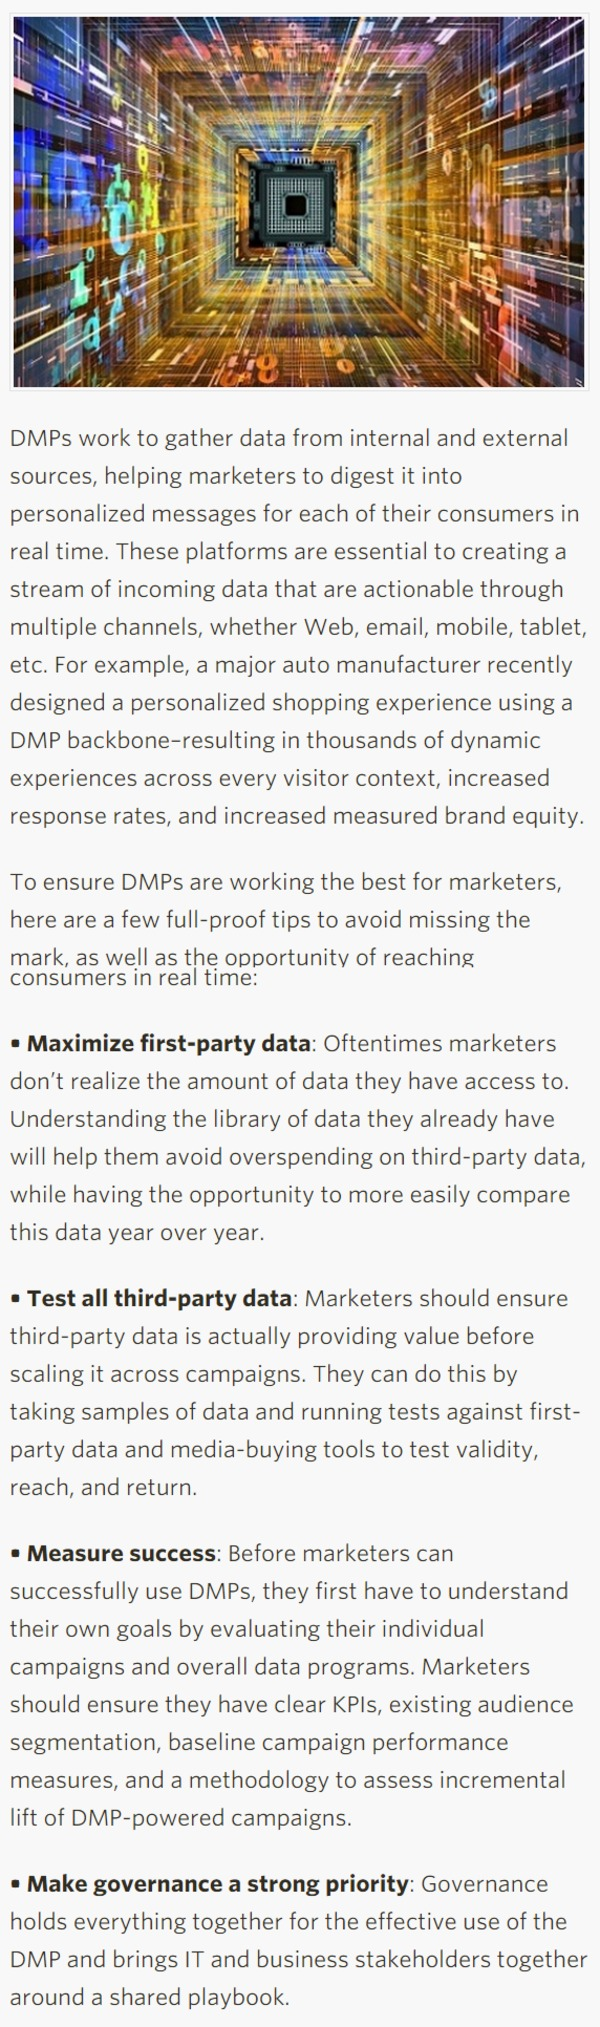 Data Management Platforms Point Marketers To Future Of Personalization - CMO.com | The Marketing Technology Alert | Scoop.it